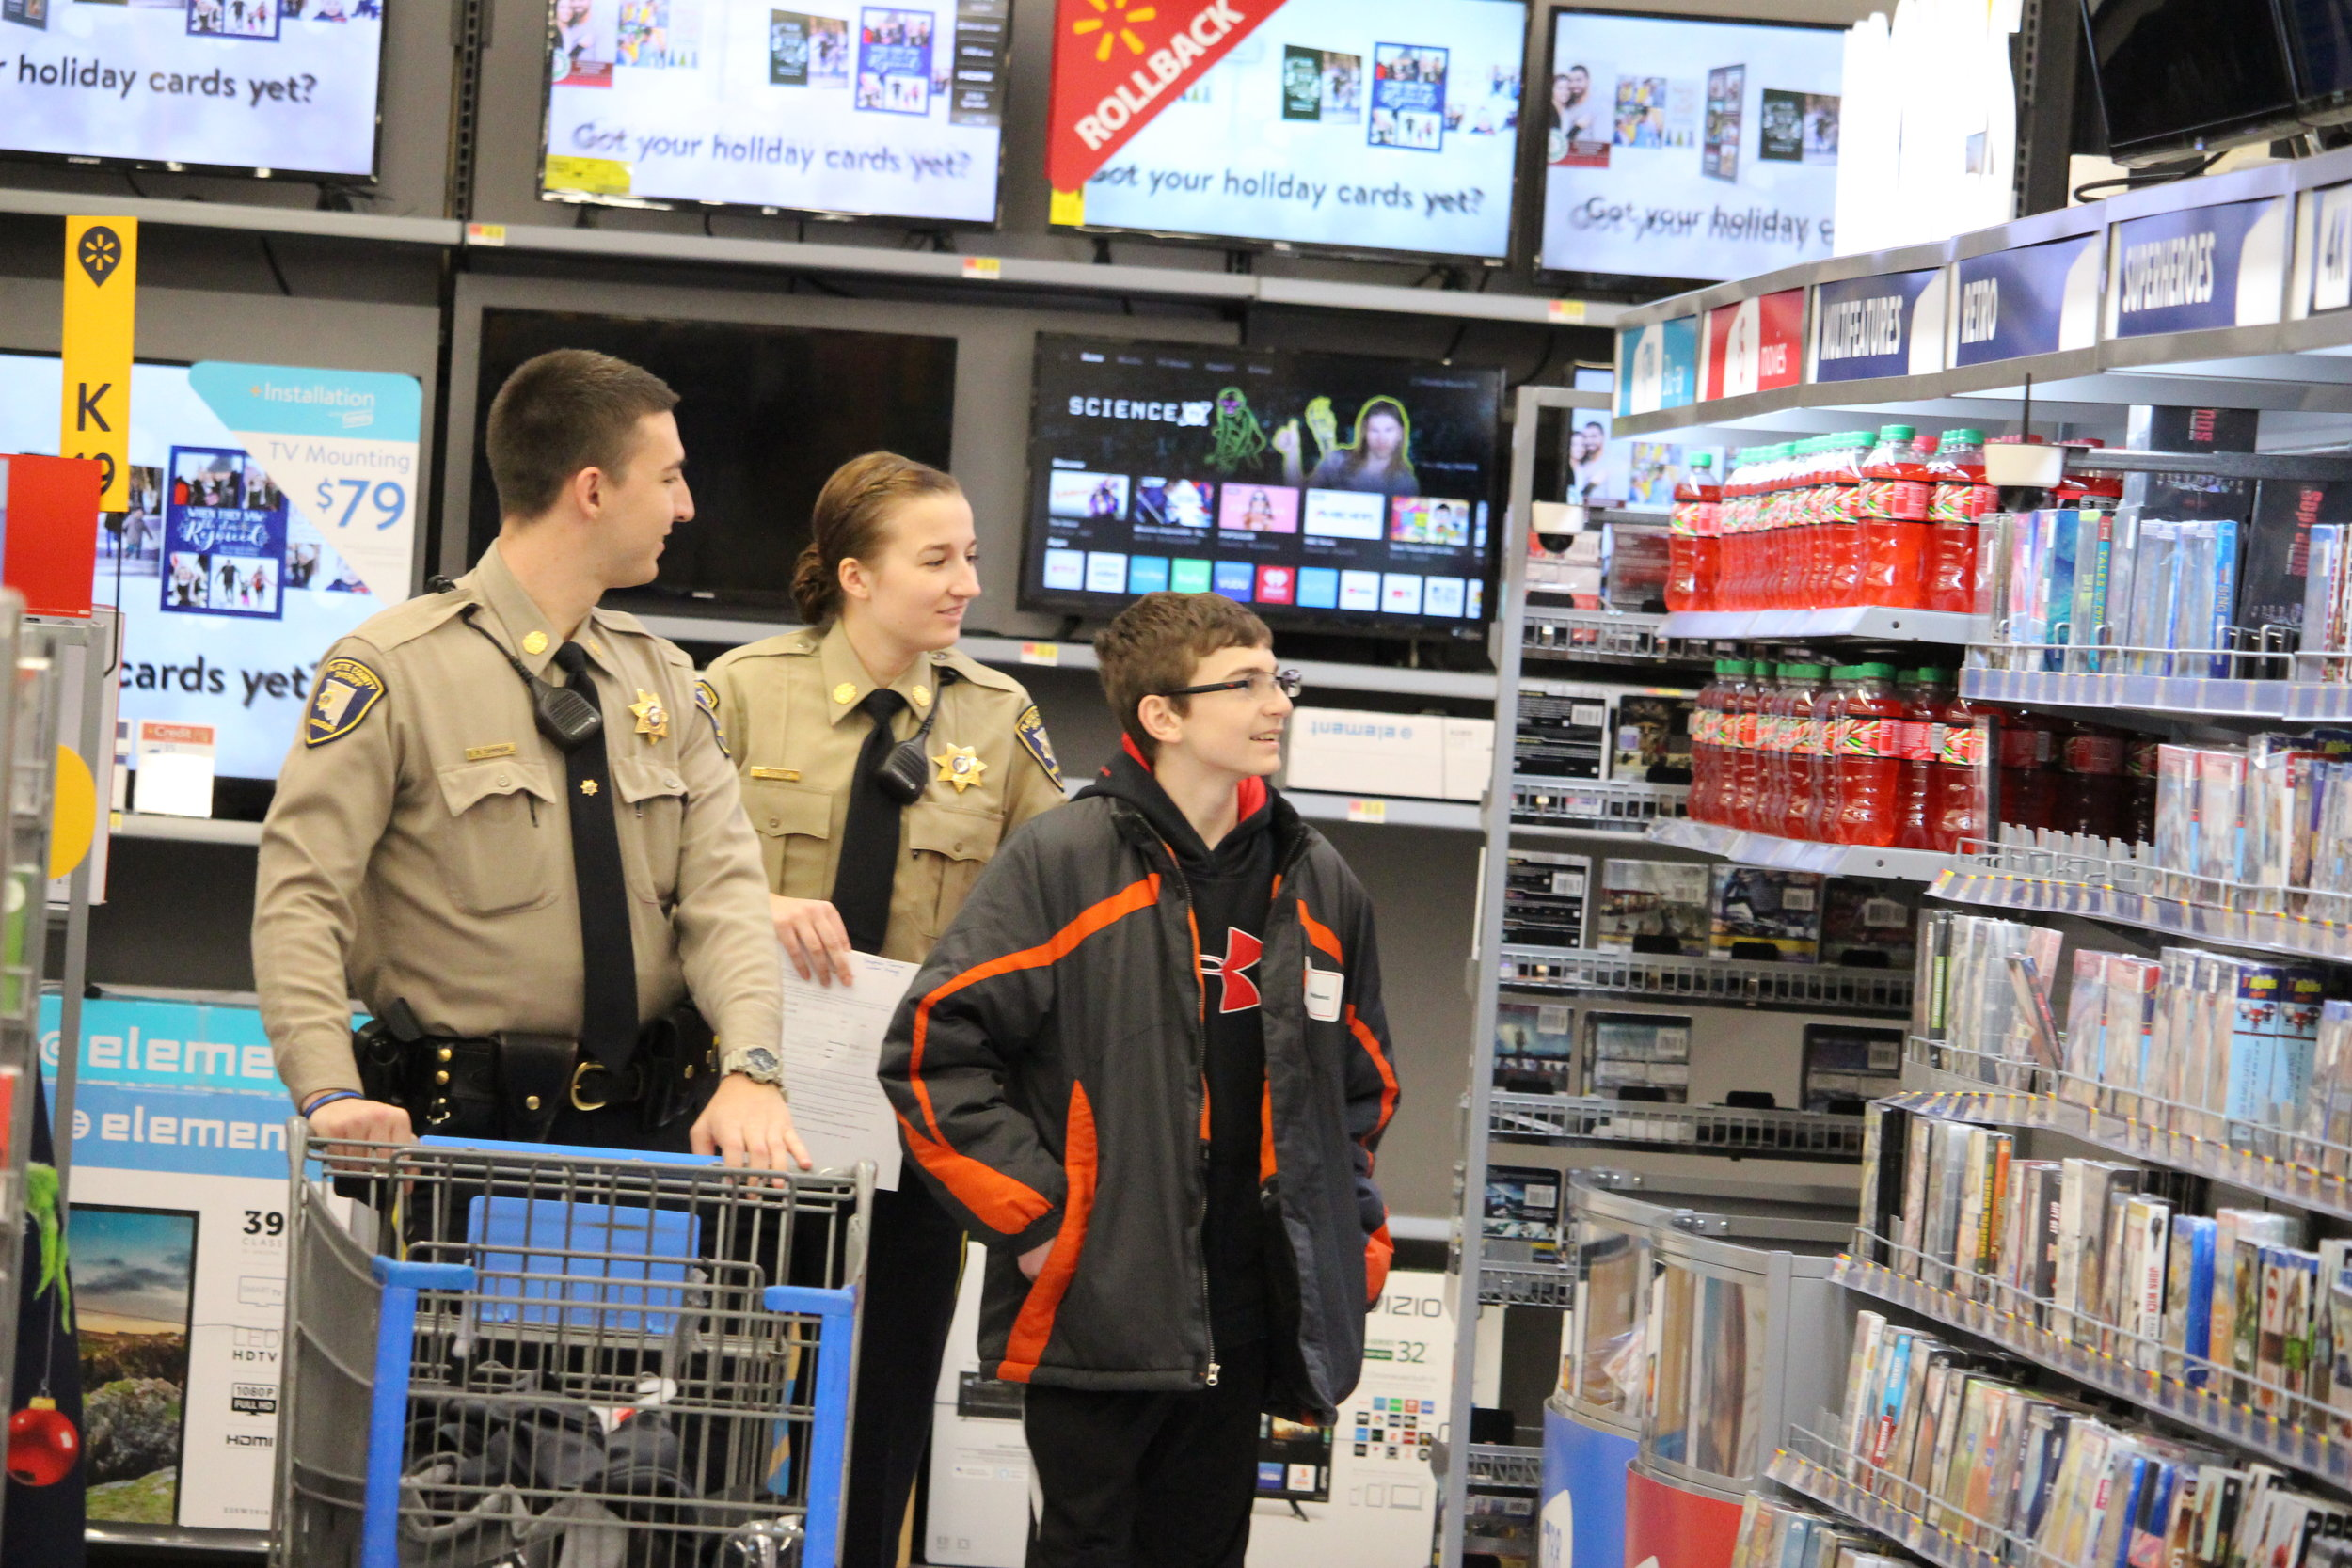 Thaddeus, far right, scopes out some movies at the Boardwalk Walmart on Saturday, Dec. 1 at the Shop With A Cop event in Kansas City North. Joining him are Platte County Sheriff's deputies Steven Tanner and Laken Kroge. CODY THORN|Citizen photo